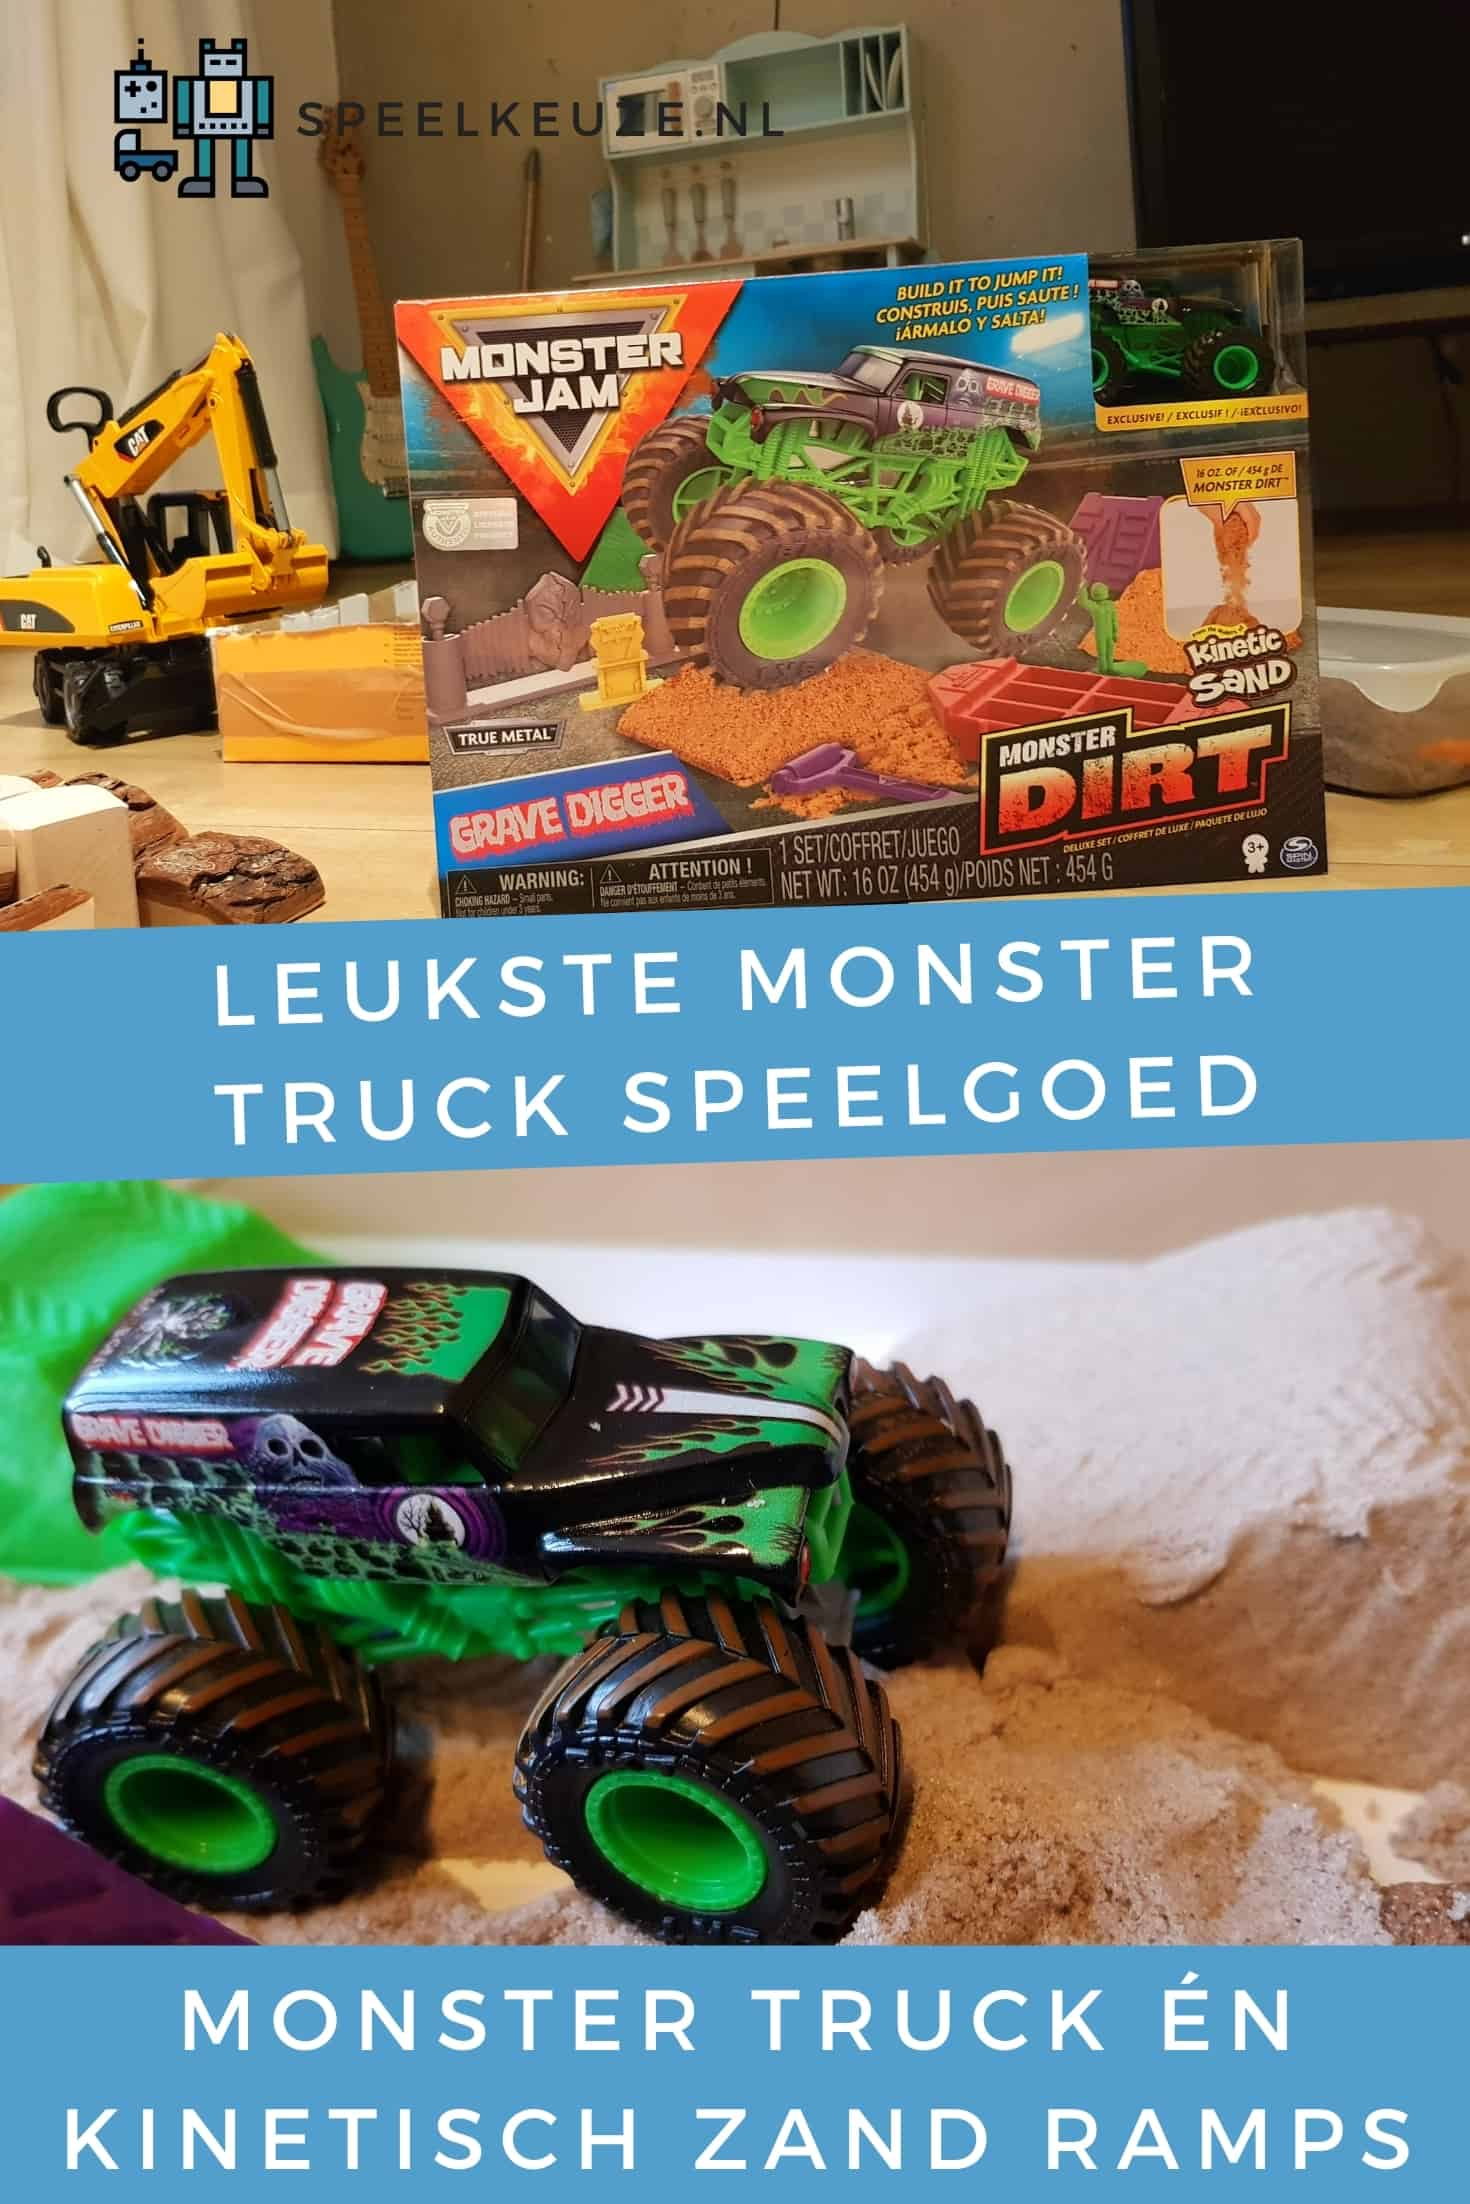 Cutest monster truck toys with kinetic sand